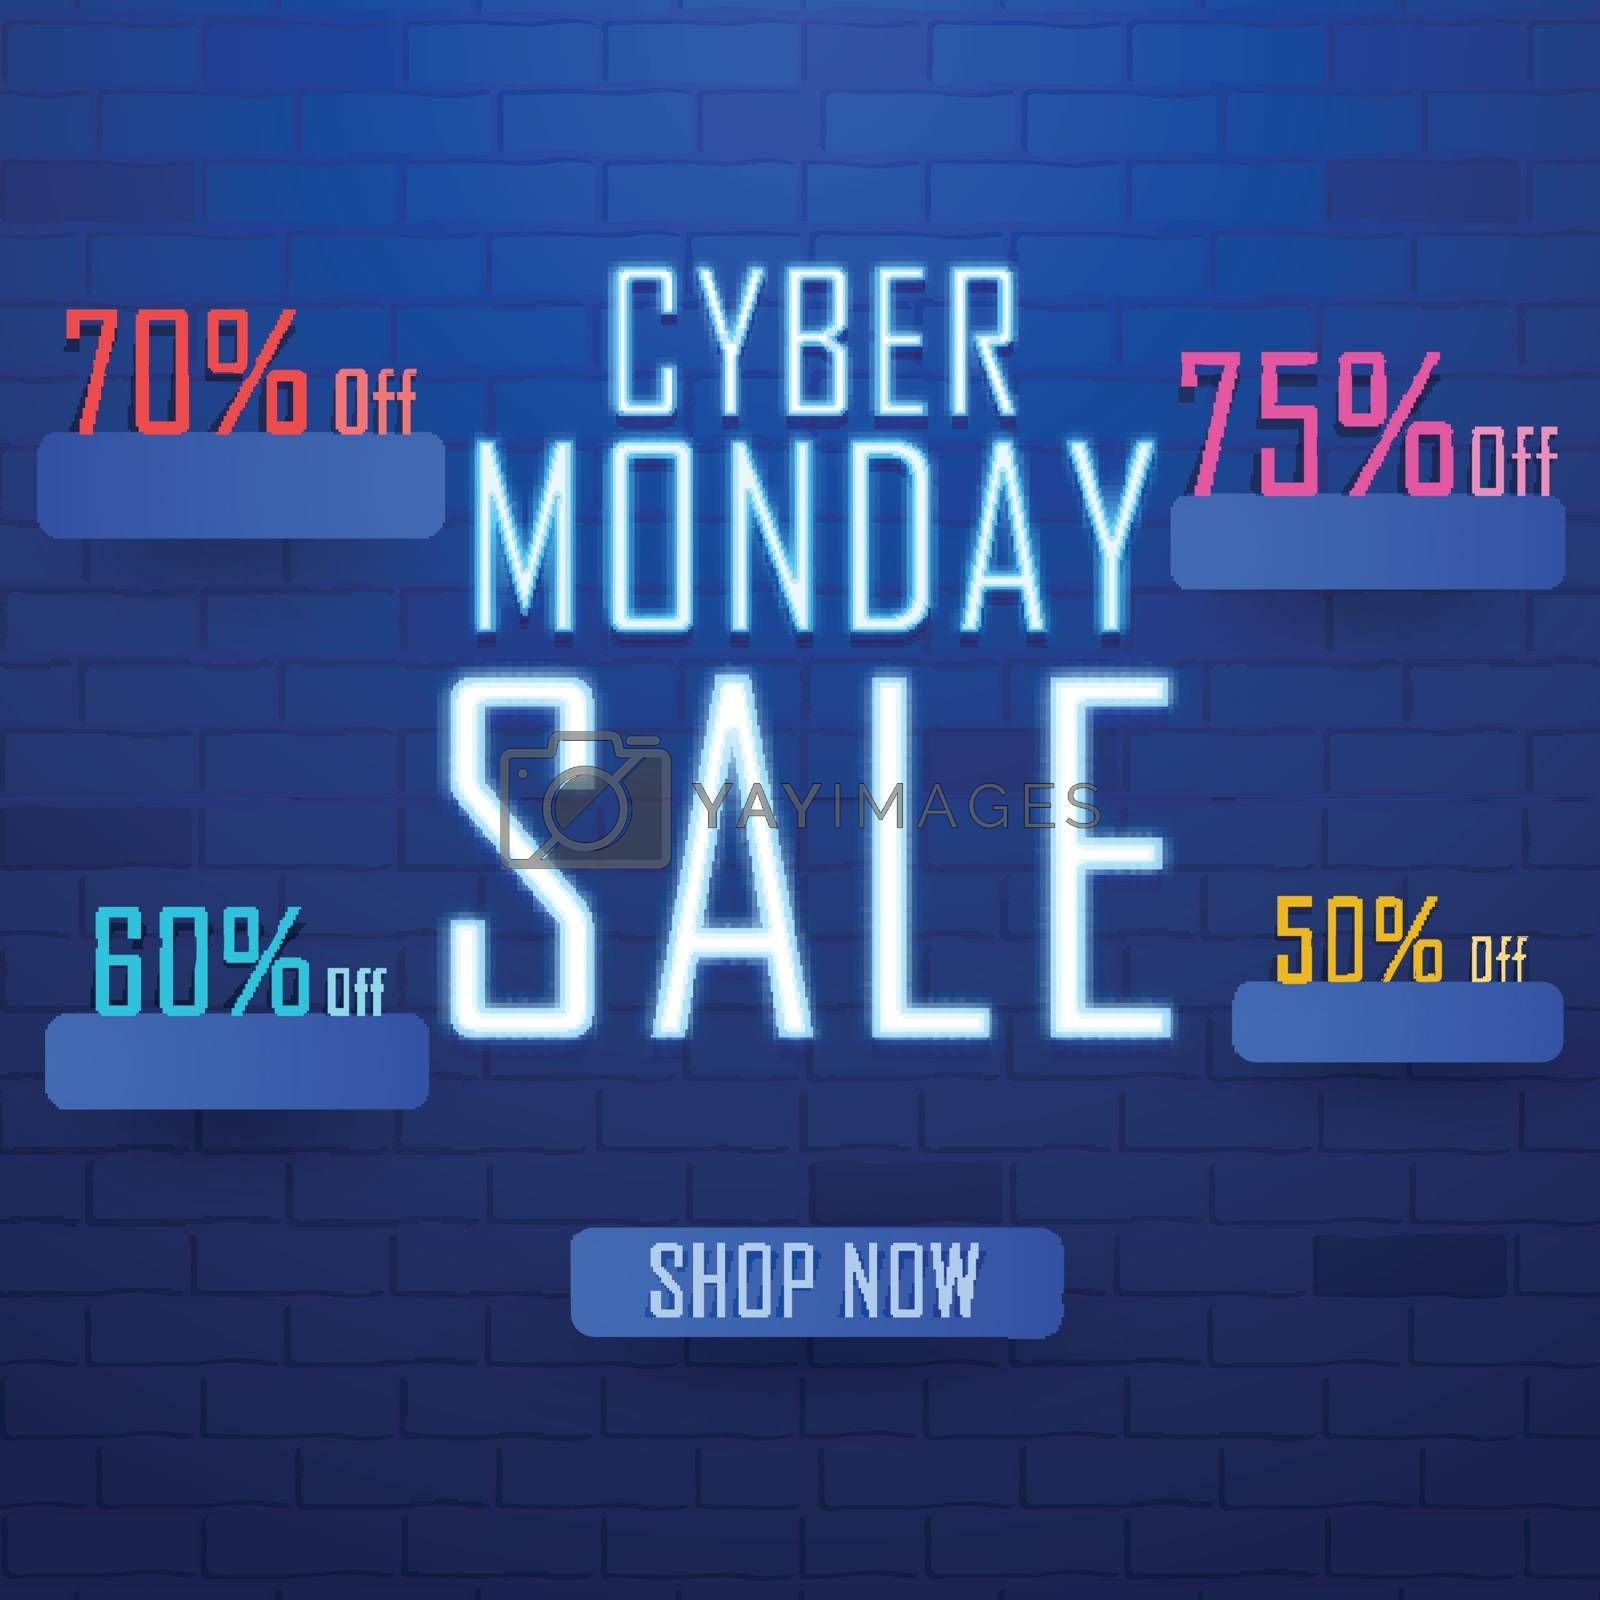 Neon text Cyber Monday Sale with different discount offers on sh by aispl